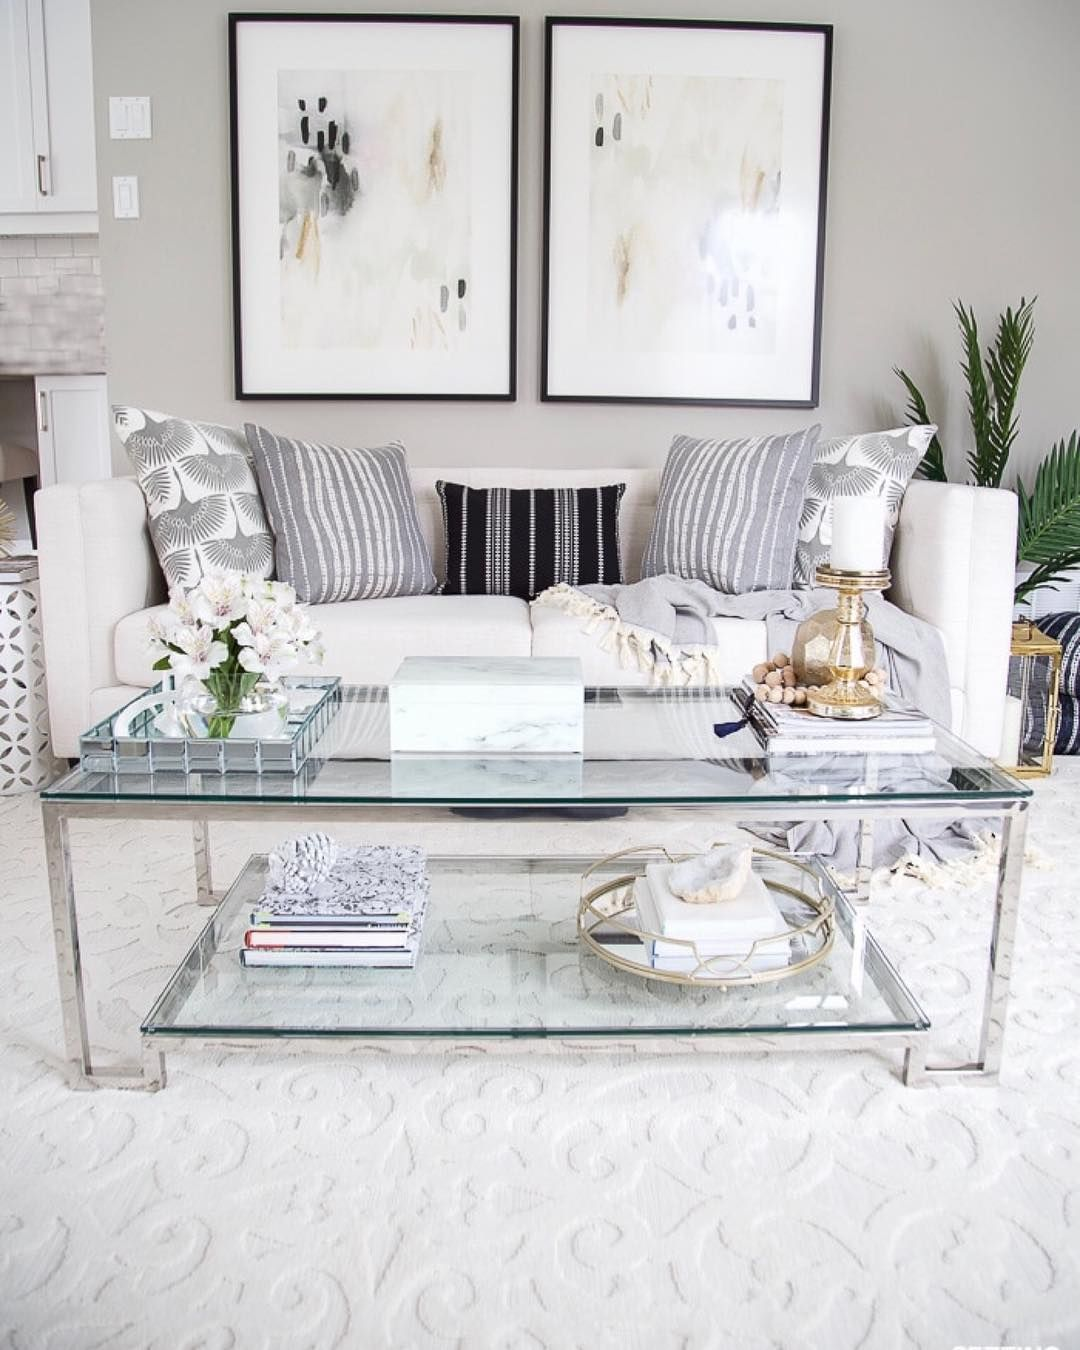 37 White And Silver Living Room Ideas That Will Inspire You Wall Decor Bedroom Wall Decor Living Room Living Room Makeover #silver #living #room #wall #decor